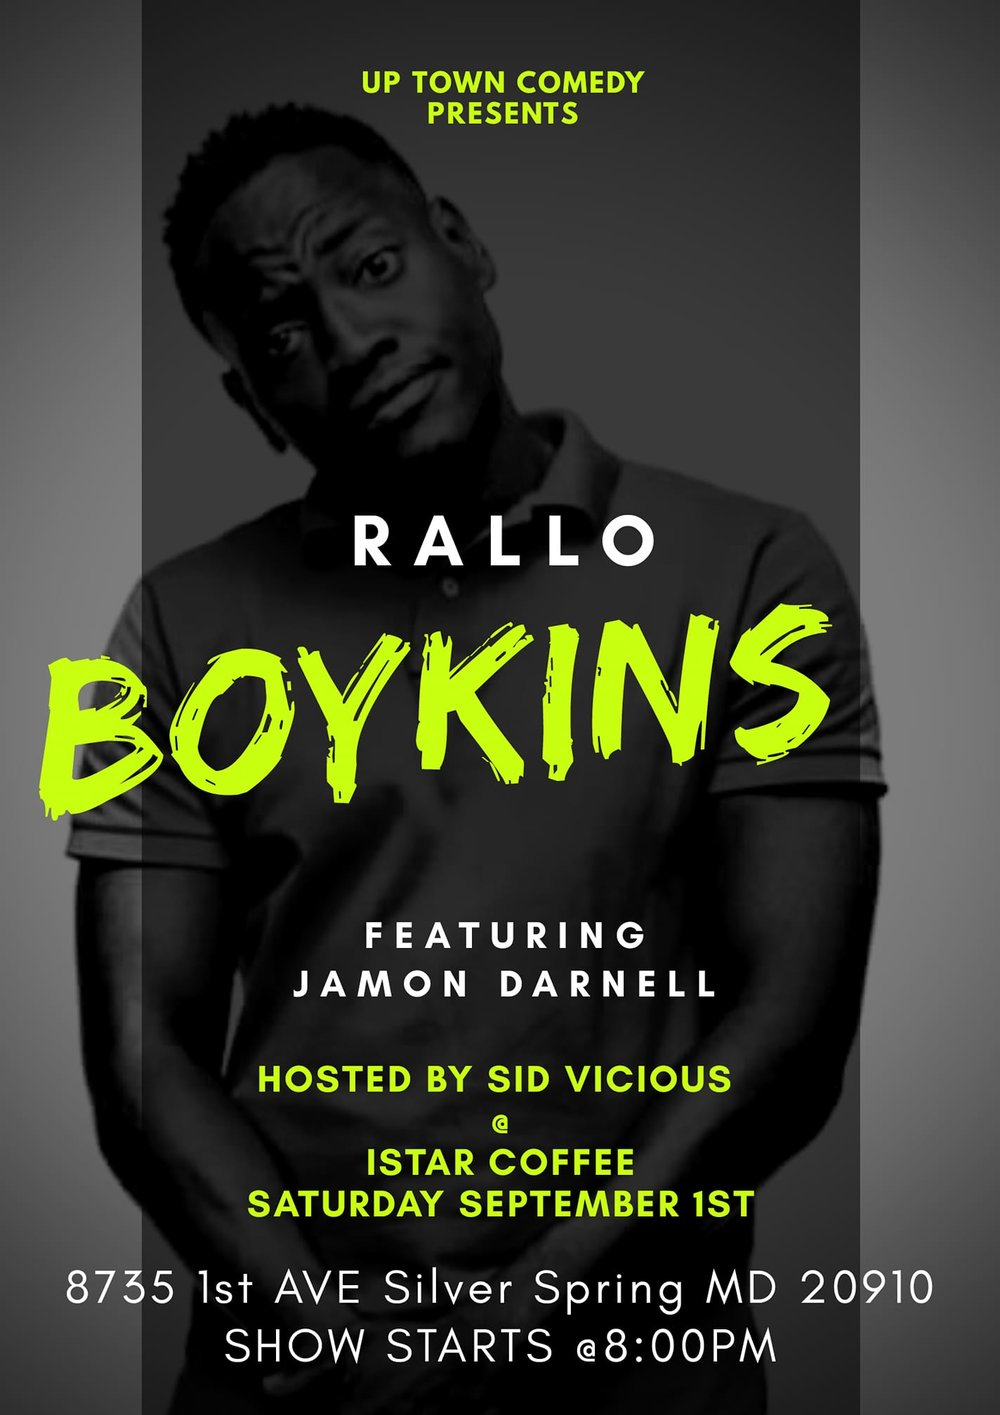 Uptown Comedy Presents: Rallo Saturday, Sept 1st 8:oopm-1o:oopm Istar Coffee| 8735 1st Ave Silver Spring | Silver Spring, MD 20910   Tickets